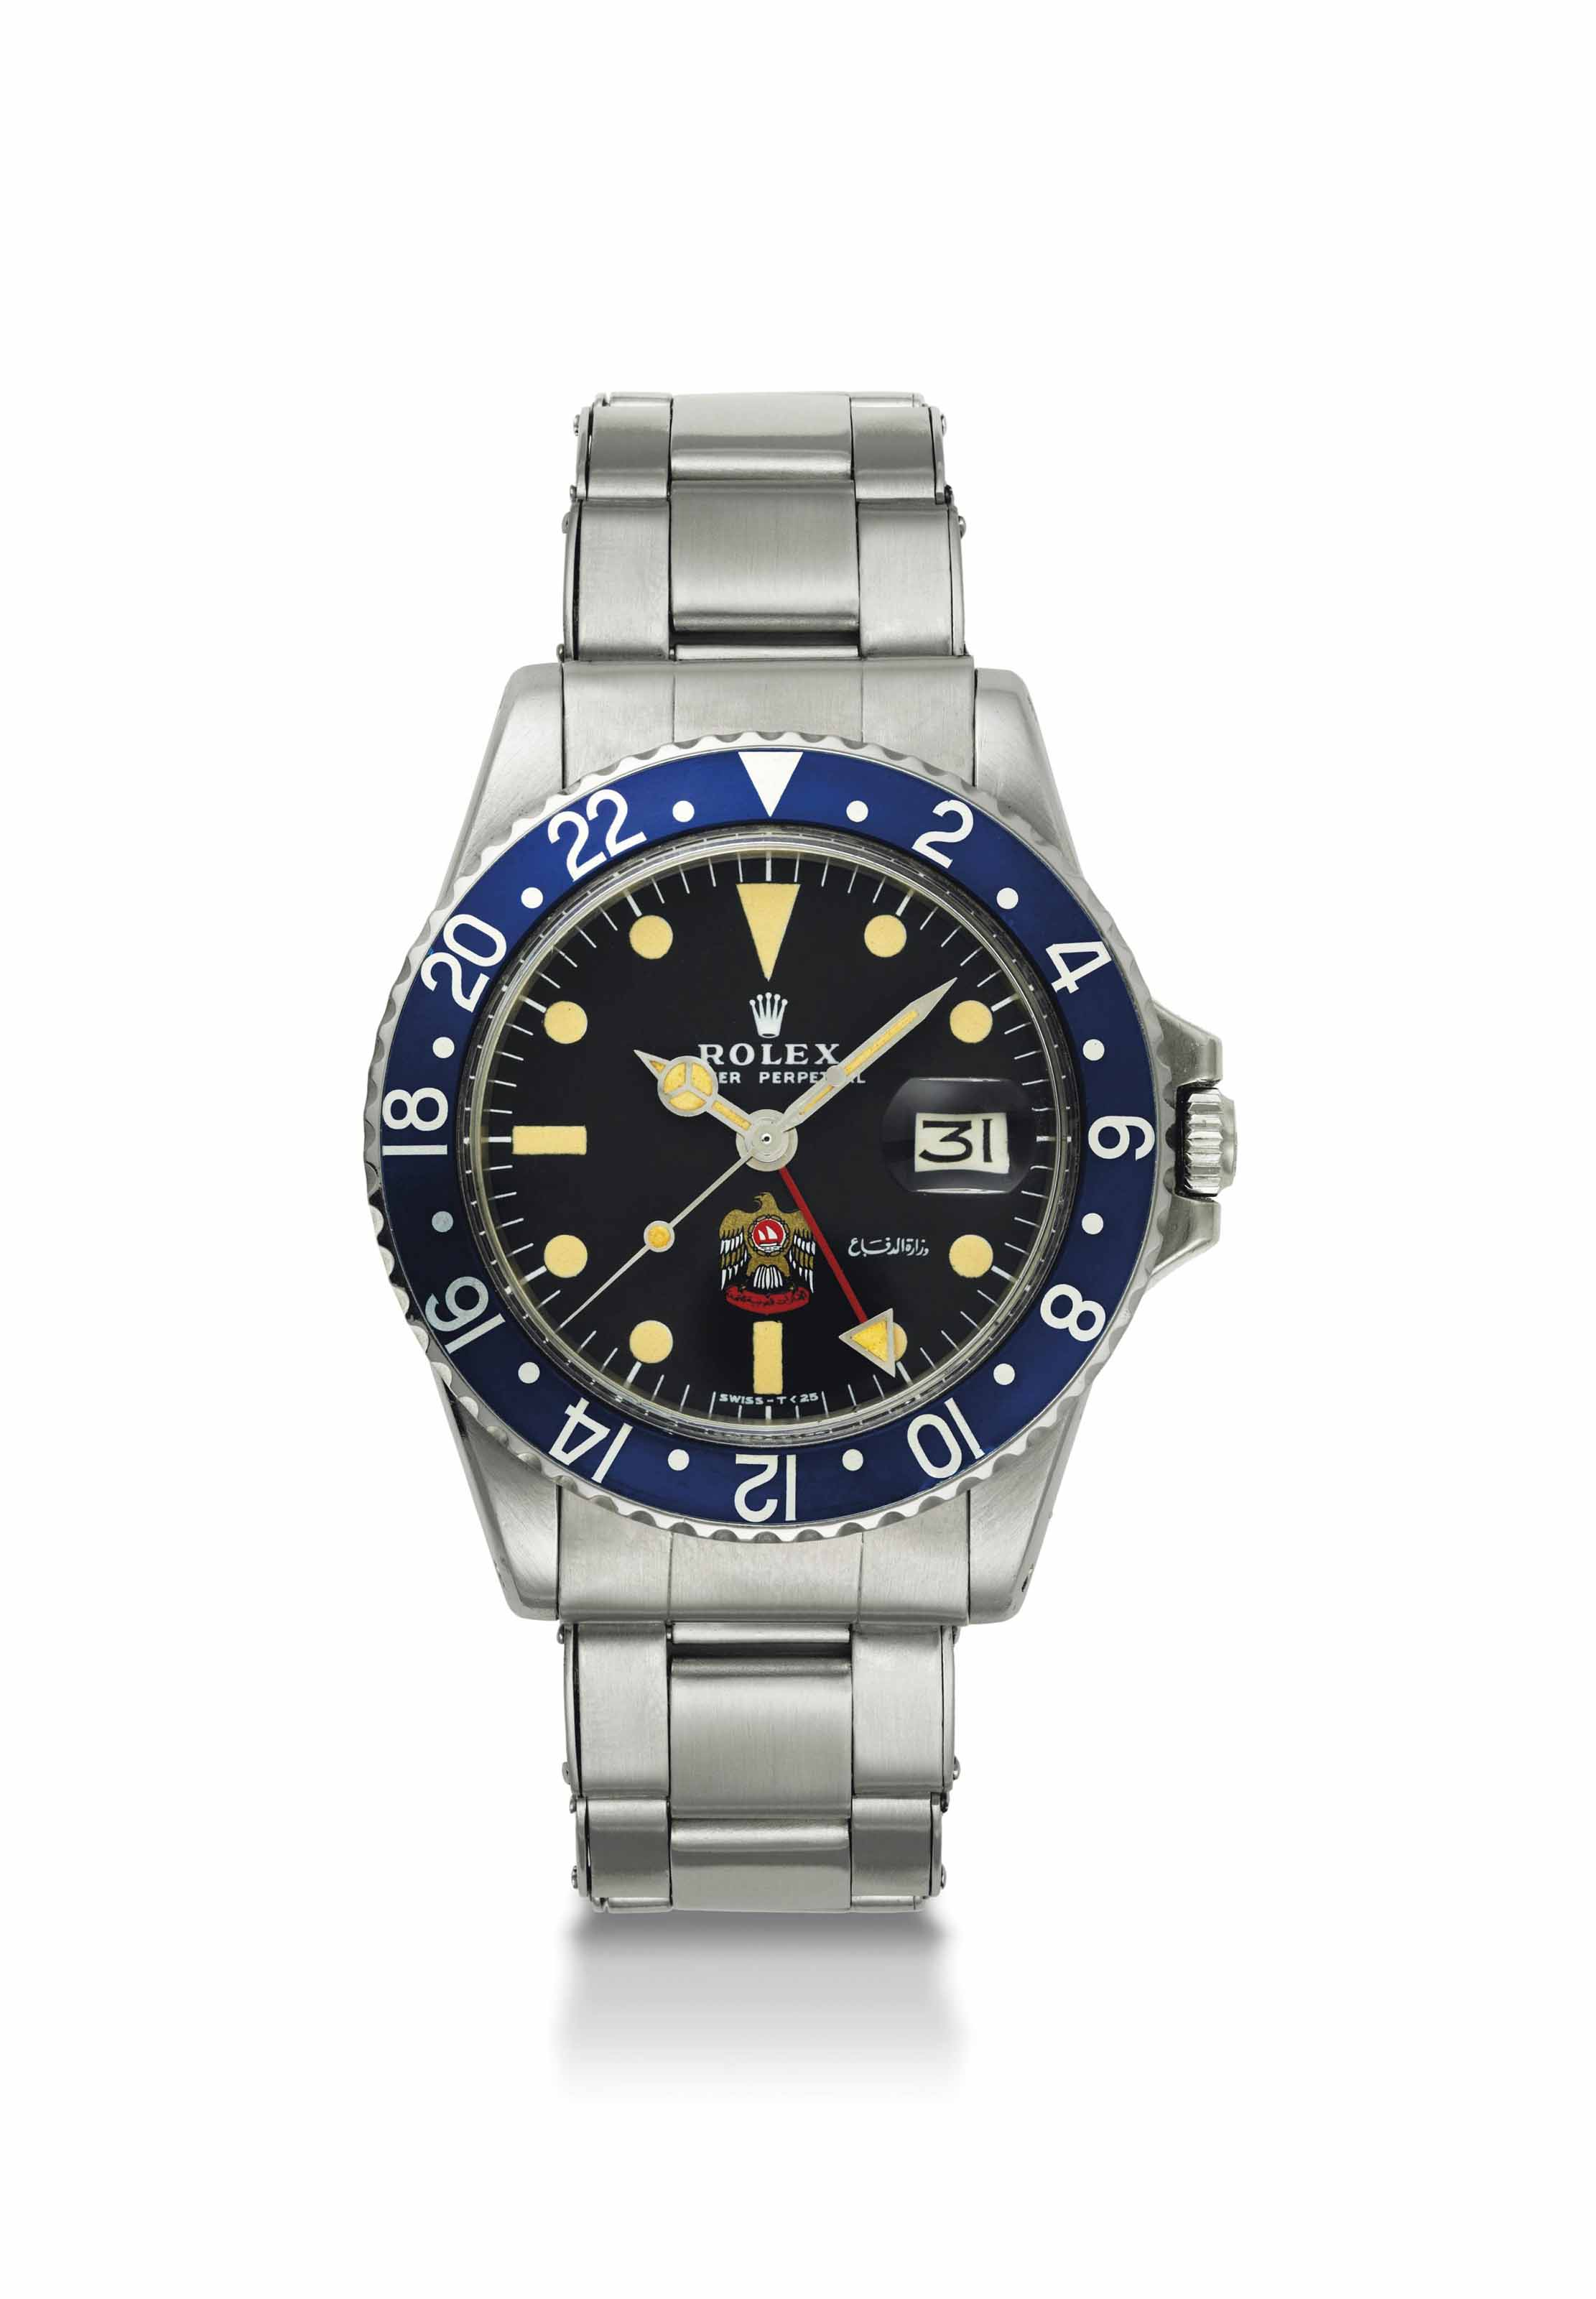 Rolex. A very fine and very rare stainless steel dual time automatic wristwatch with sweep centre seconds, date, bracelet and navy blue bezel, made for His Highness Sheikh Mohammed bin Rashid Al Maktoum